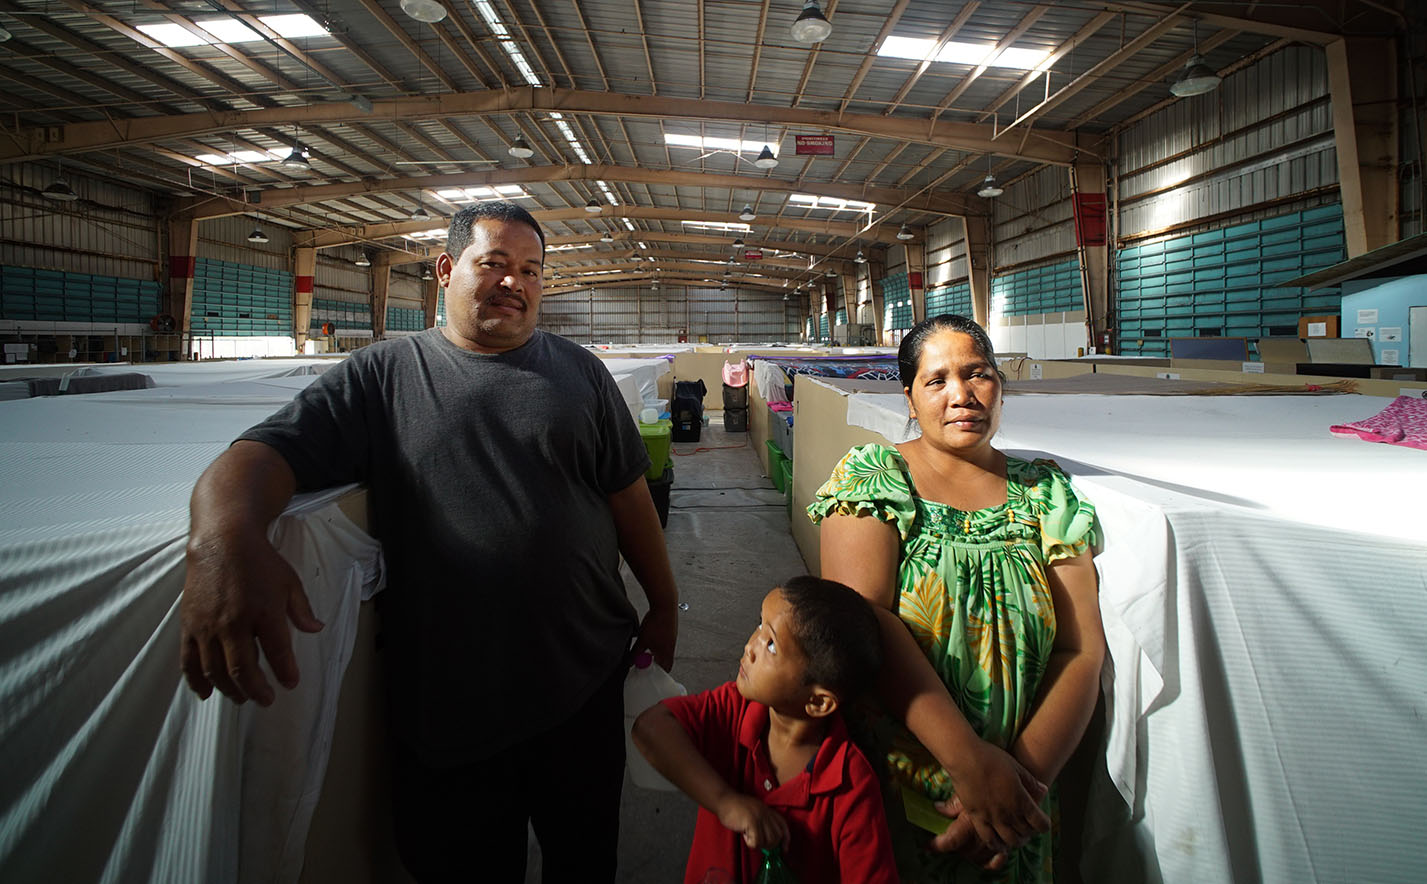 <p>Careless Mathin, left, and Kiana Kasper found shelter for their family at the Next Step homeless shelter in Honolulu. Originally from Chuuk, they came to Hawaii so that Mathin could treat his diabetes.Photo by Cory Lum.</p>